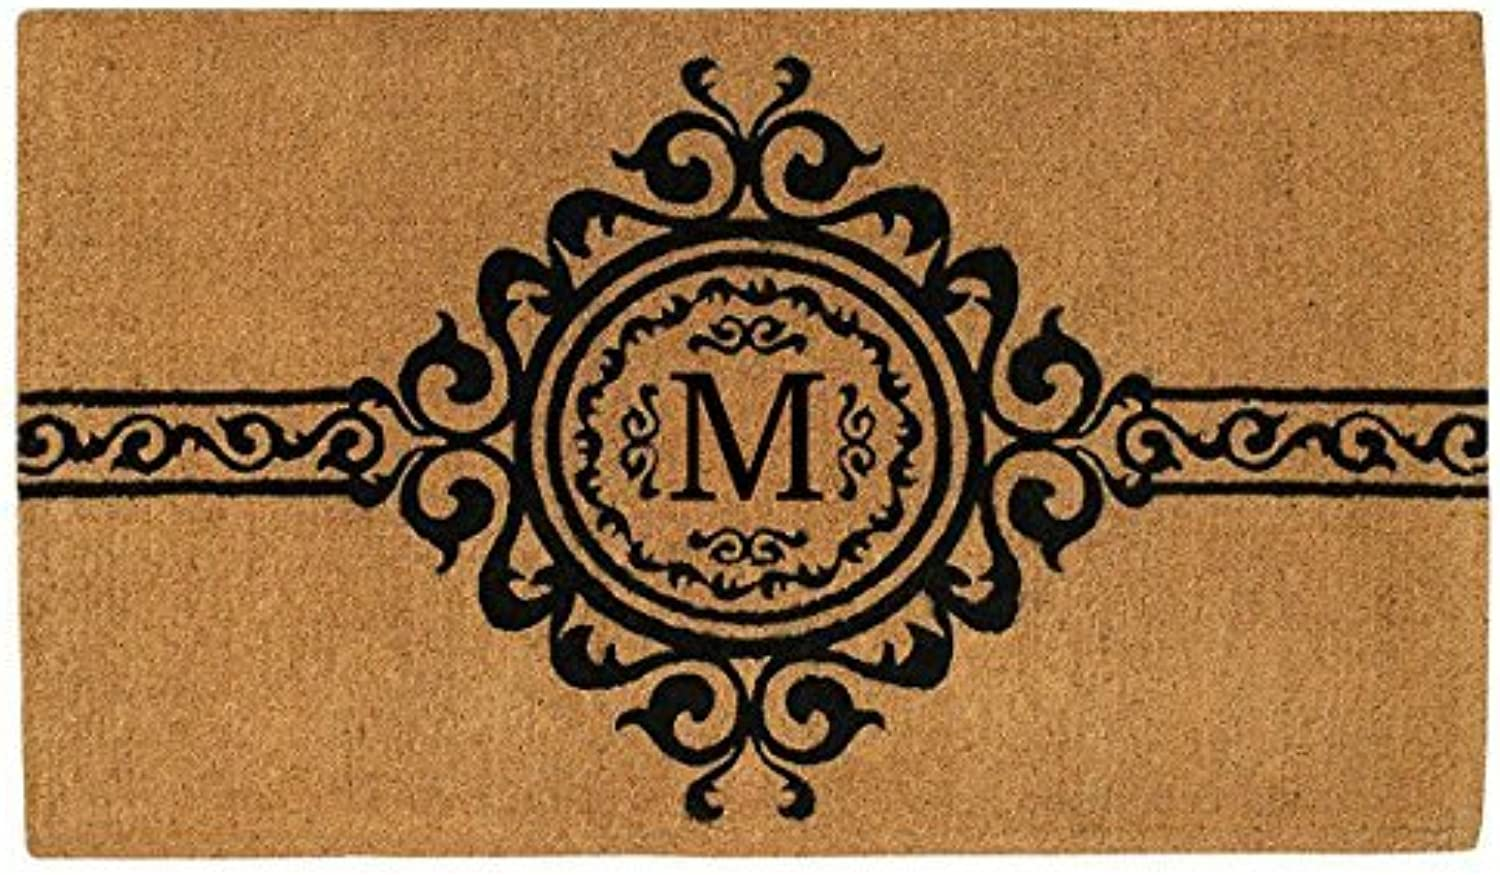 Home & More 180071830M Garbo Extra-Thick Doormat, 18  x 30  x 1.50 , Monogrammed Letter M, Natural Black